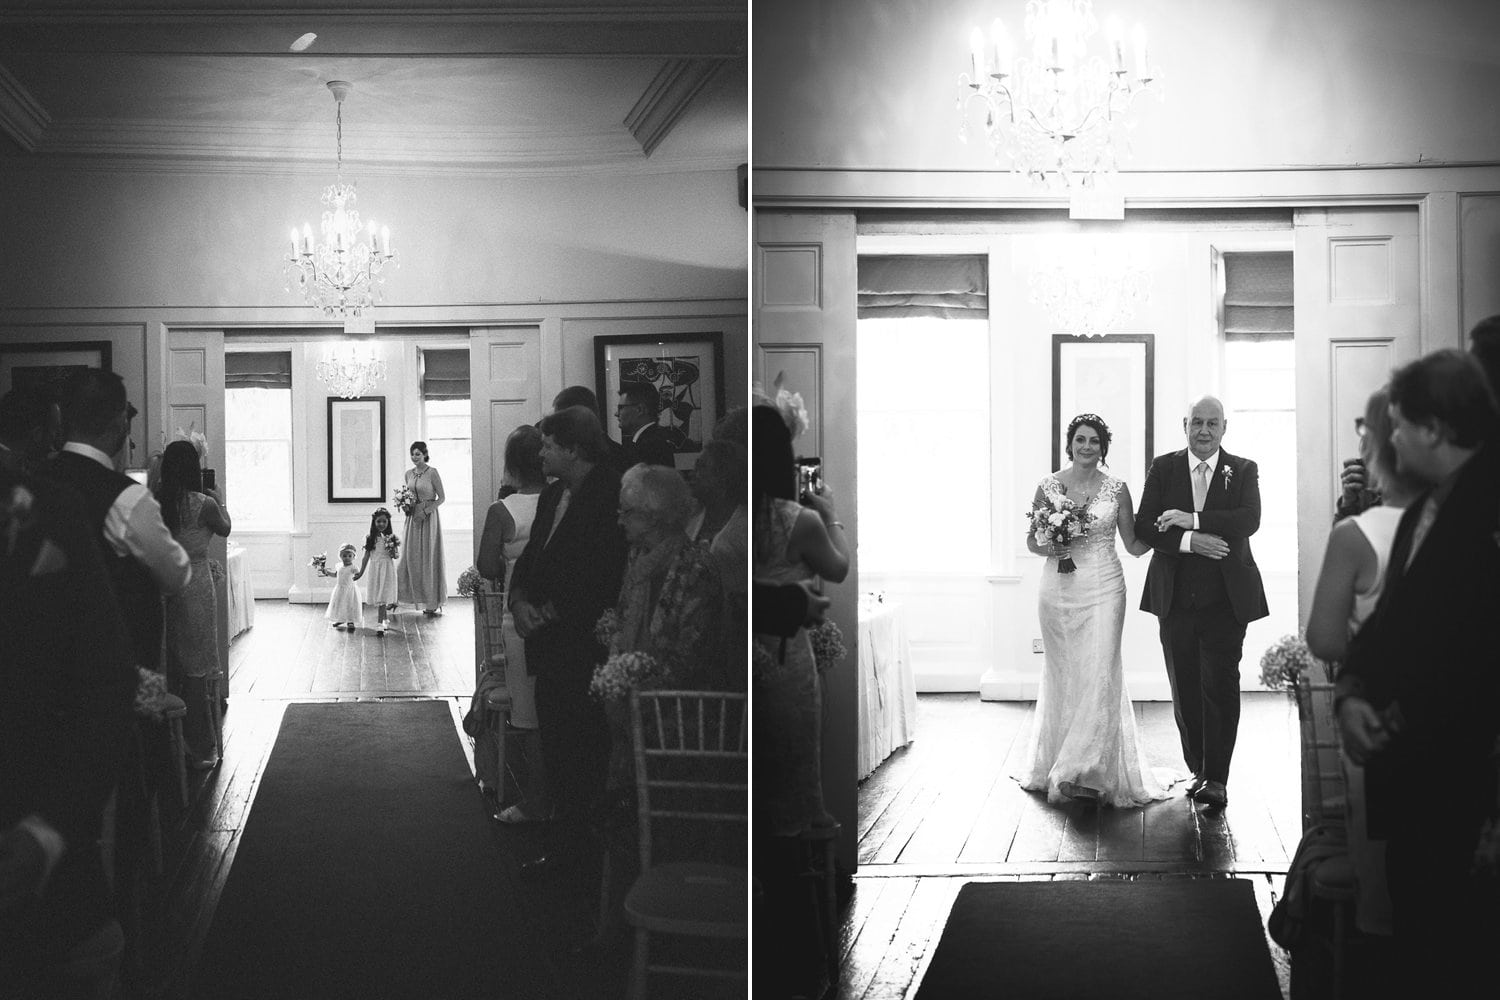 The Old Deanery Wedding aisle